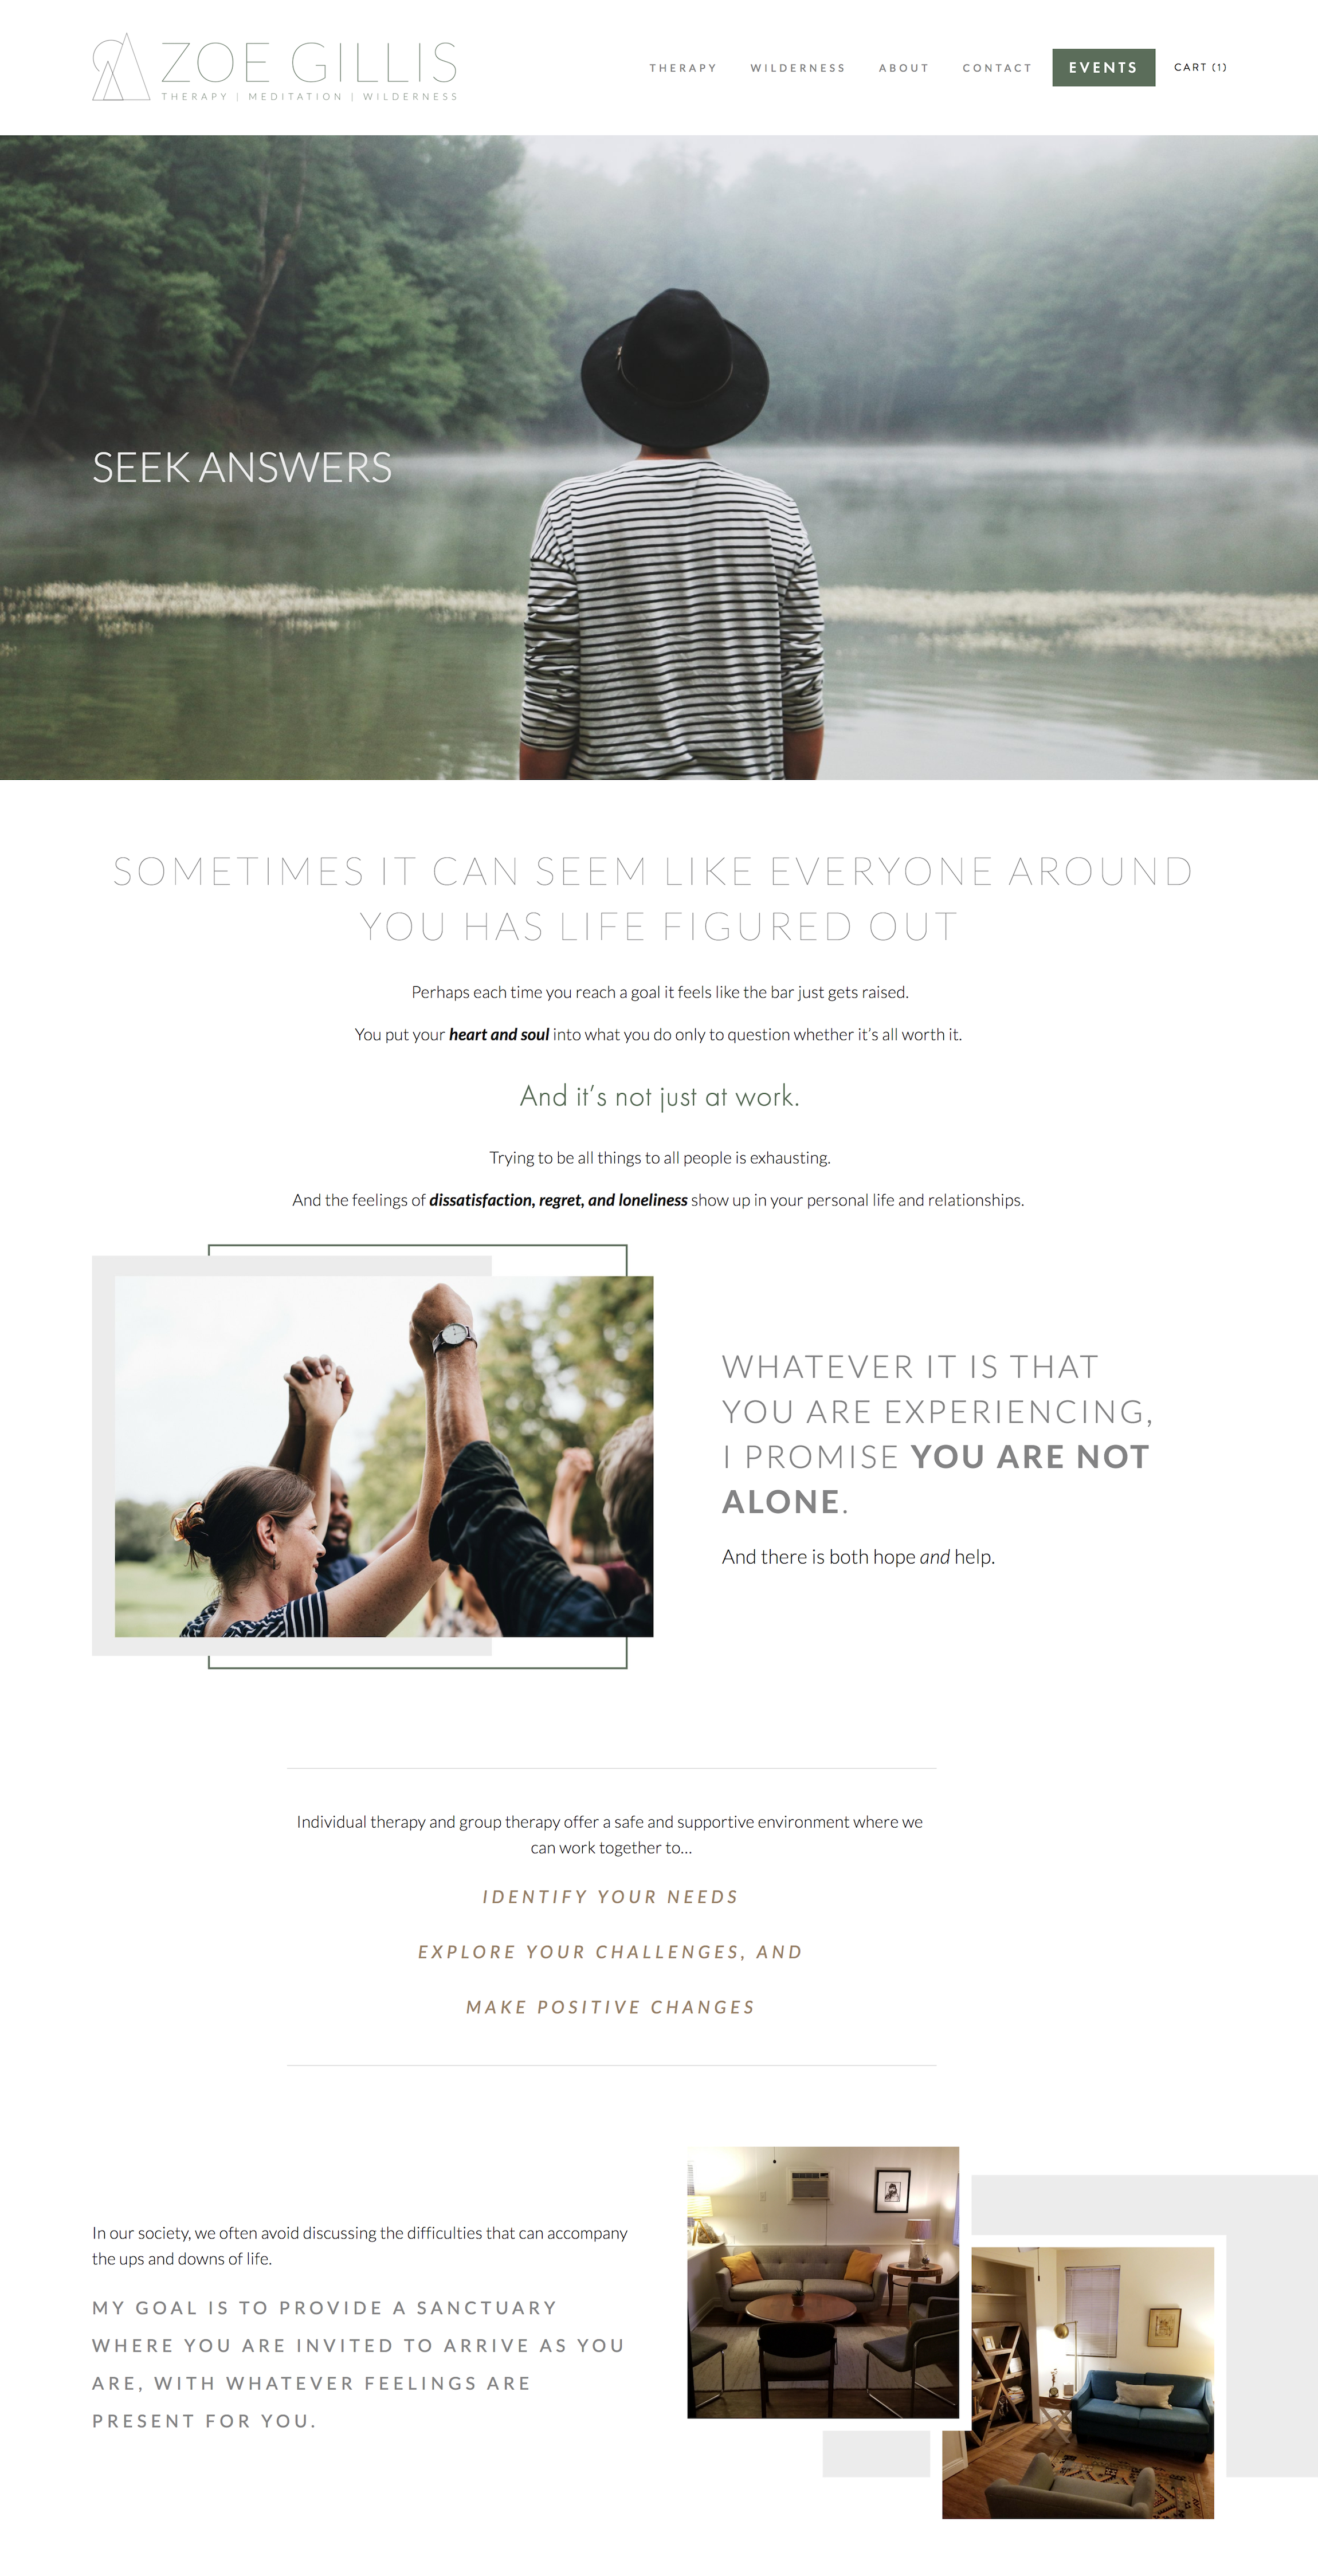 Zoe Gillis Website Pinterest - Therapy.png